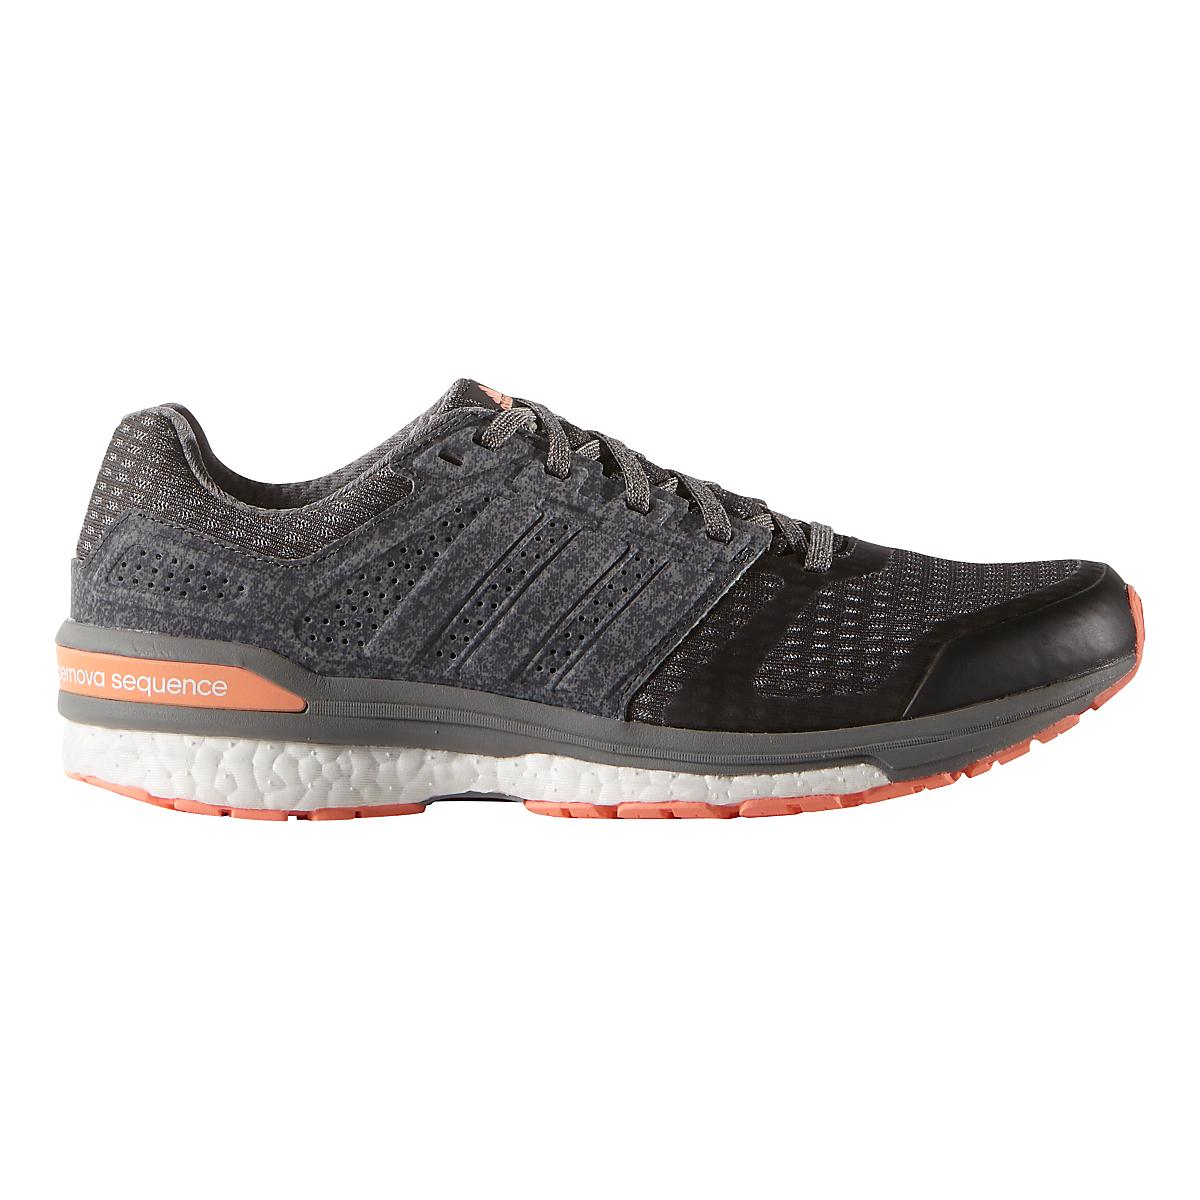 f67f026465959 Womens adidas Supernova Sequence 8 Boost Running Shoe at Road Runner Sports